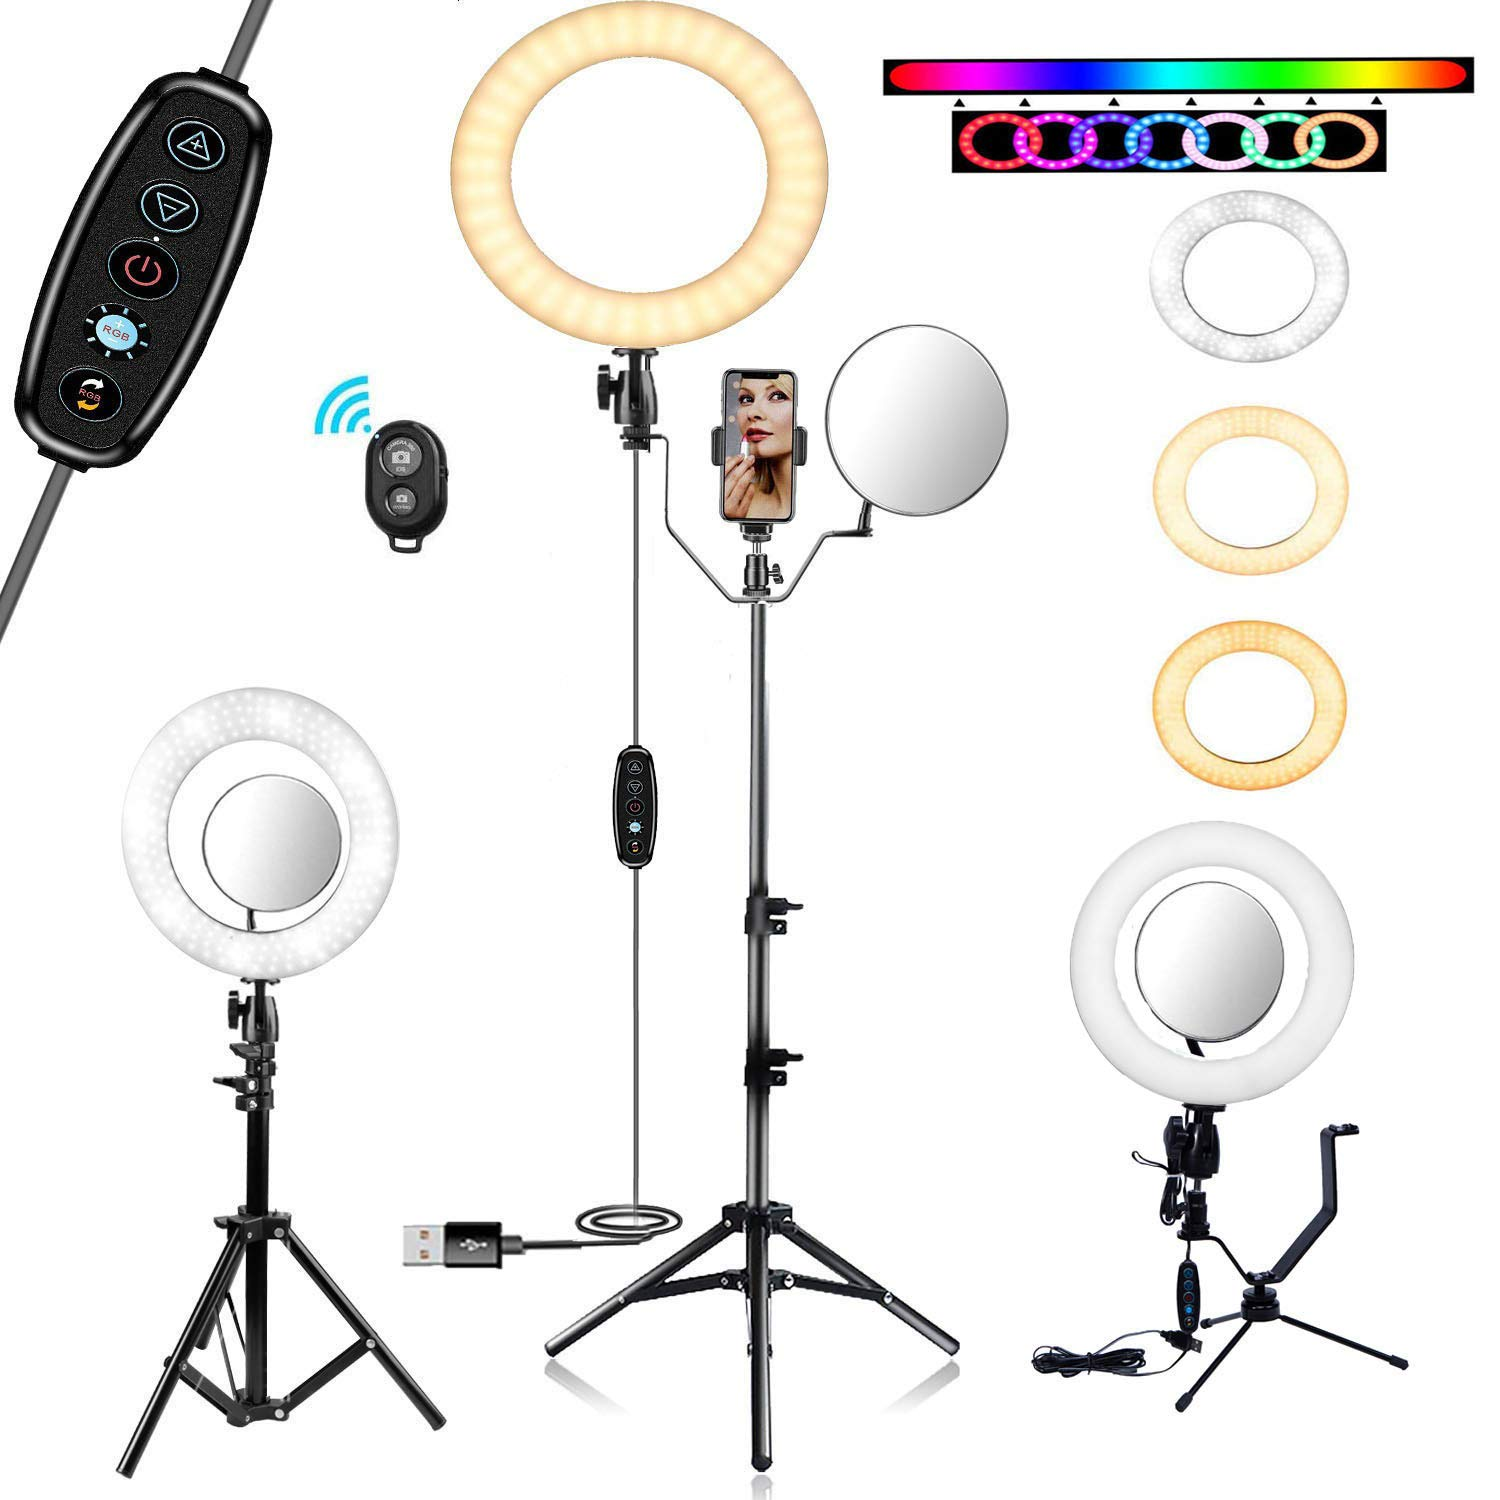 KEYUTE 10'' Selfie Ring Light, Dimmable RGB LED Ring Light with Tripod Stand and Cell Phone Holder for Vlog, Desktop Beauty Make up Ring Light with Mirror for YouTube Video Live Steaming by KEYUTE